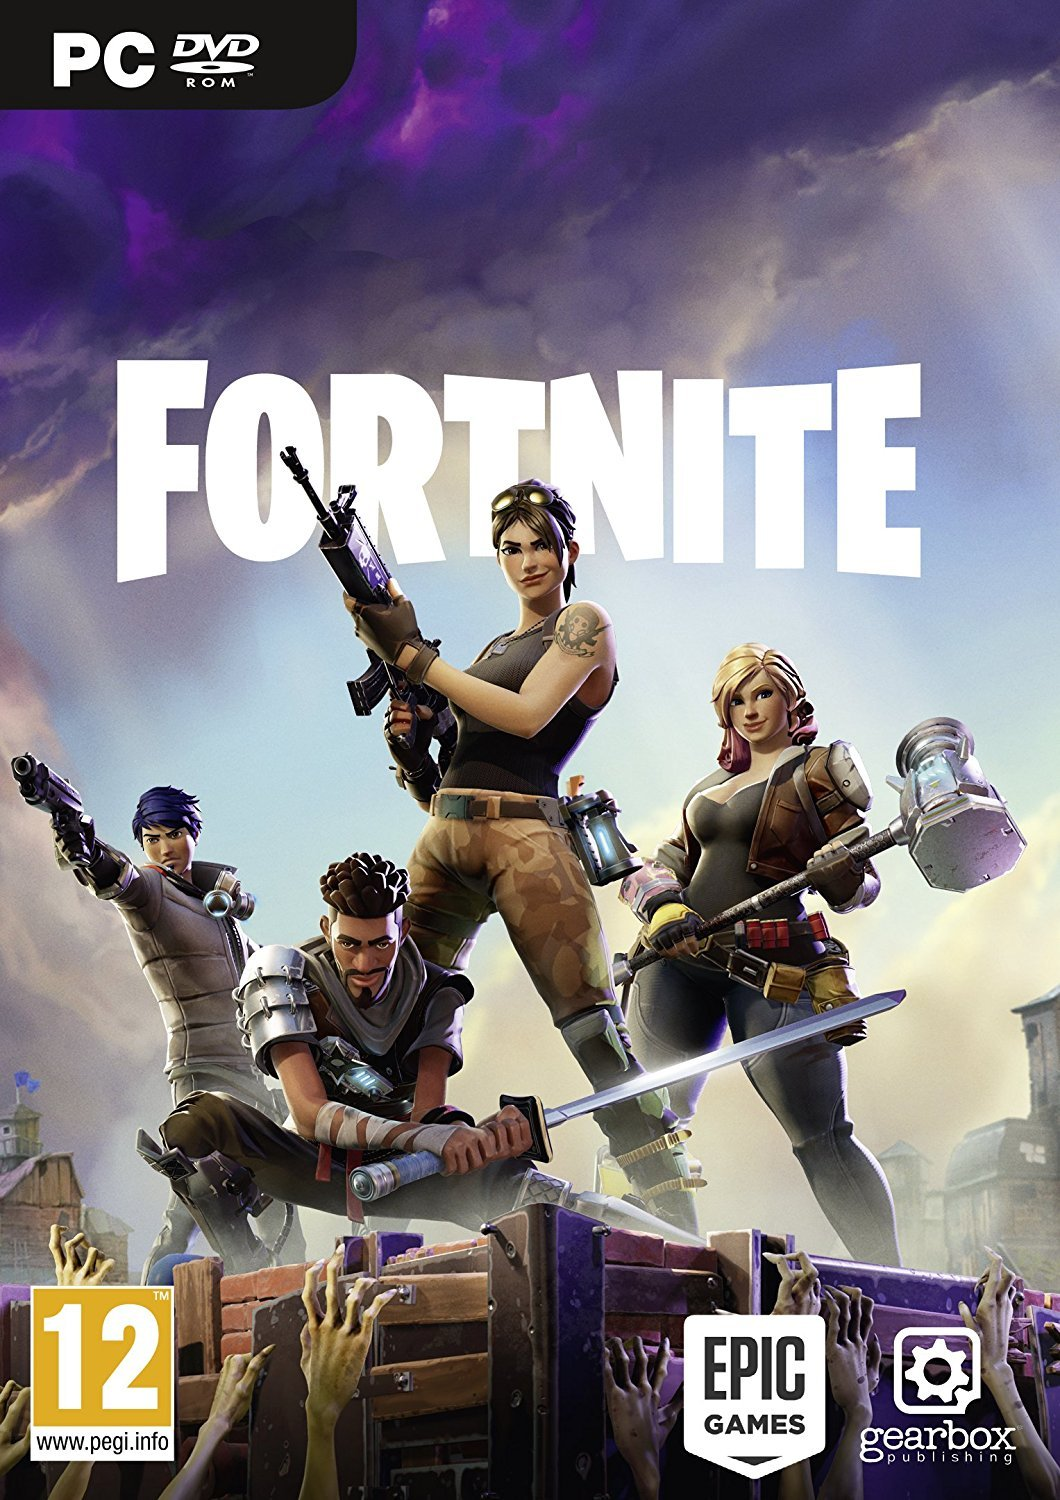 https://img5.downloadha.com/hosein/files/2018/08/Fortnite-pc-cover-large.jpg